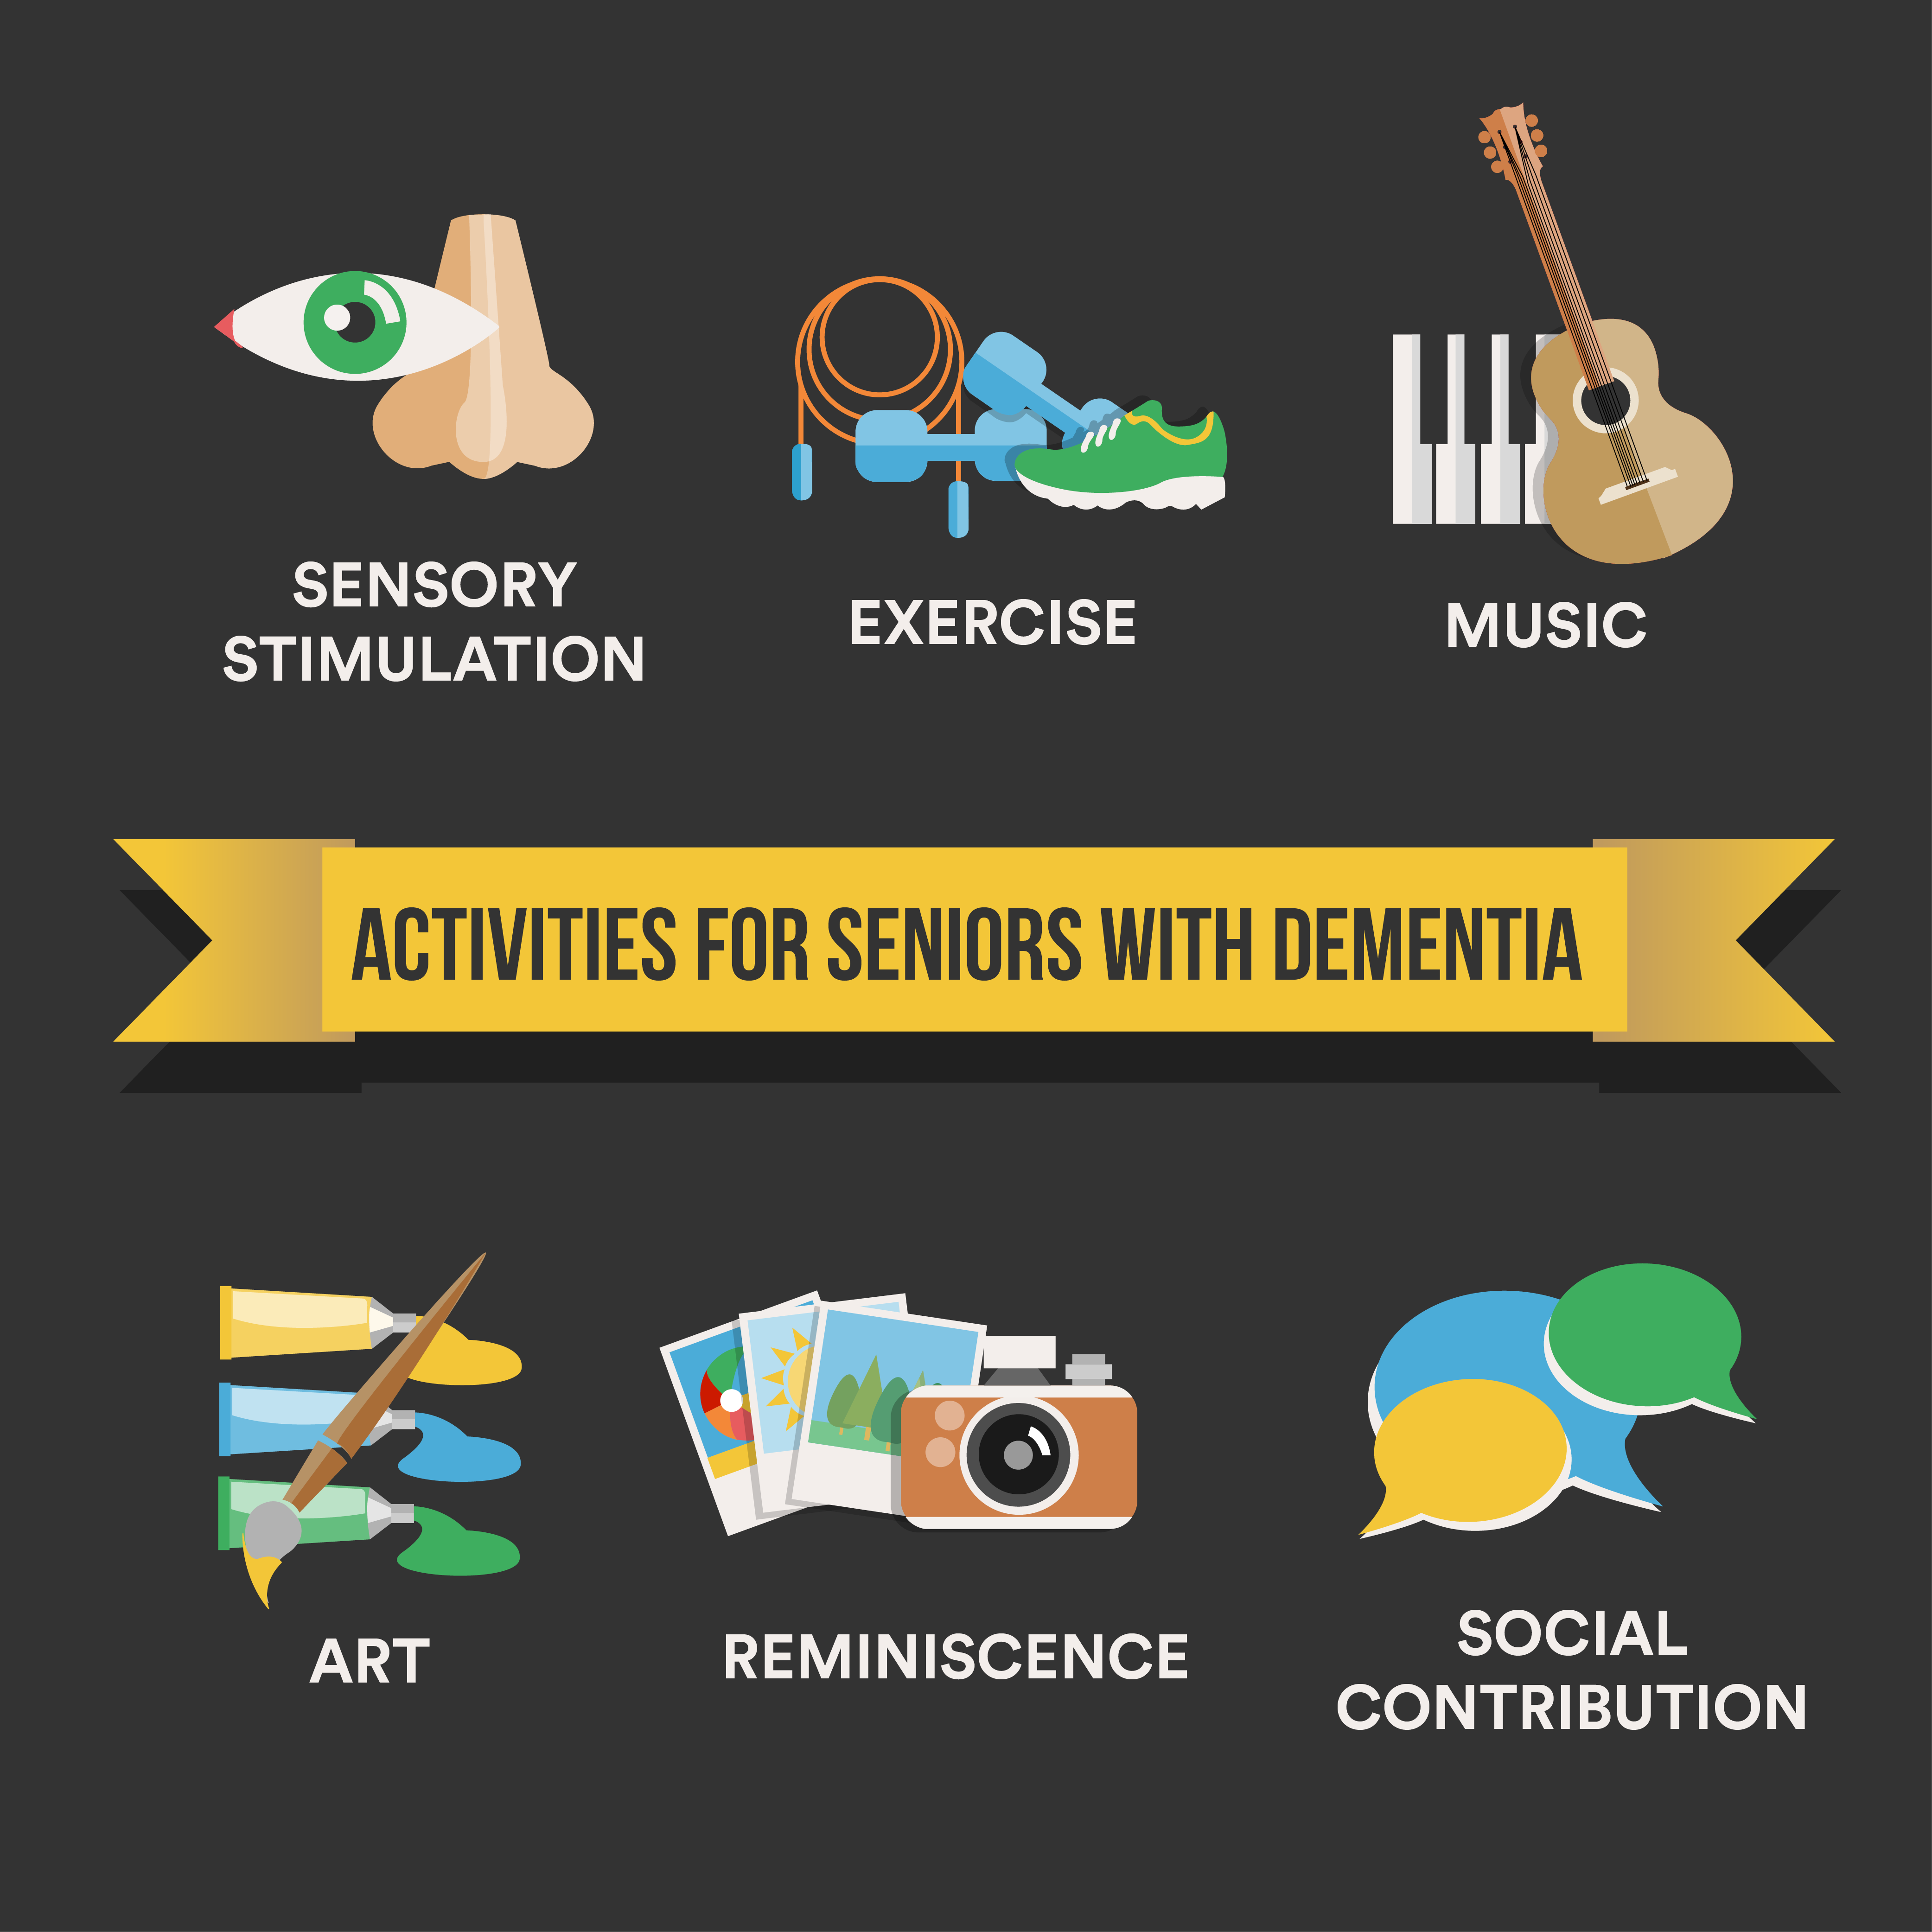 There Are Many Activities That Can Be Beneficial And